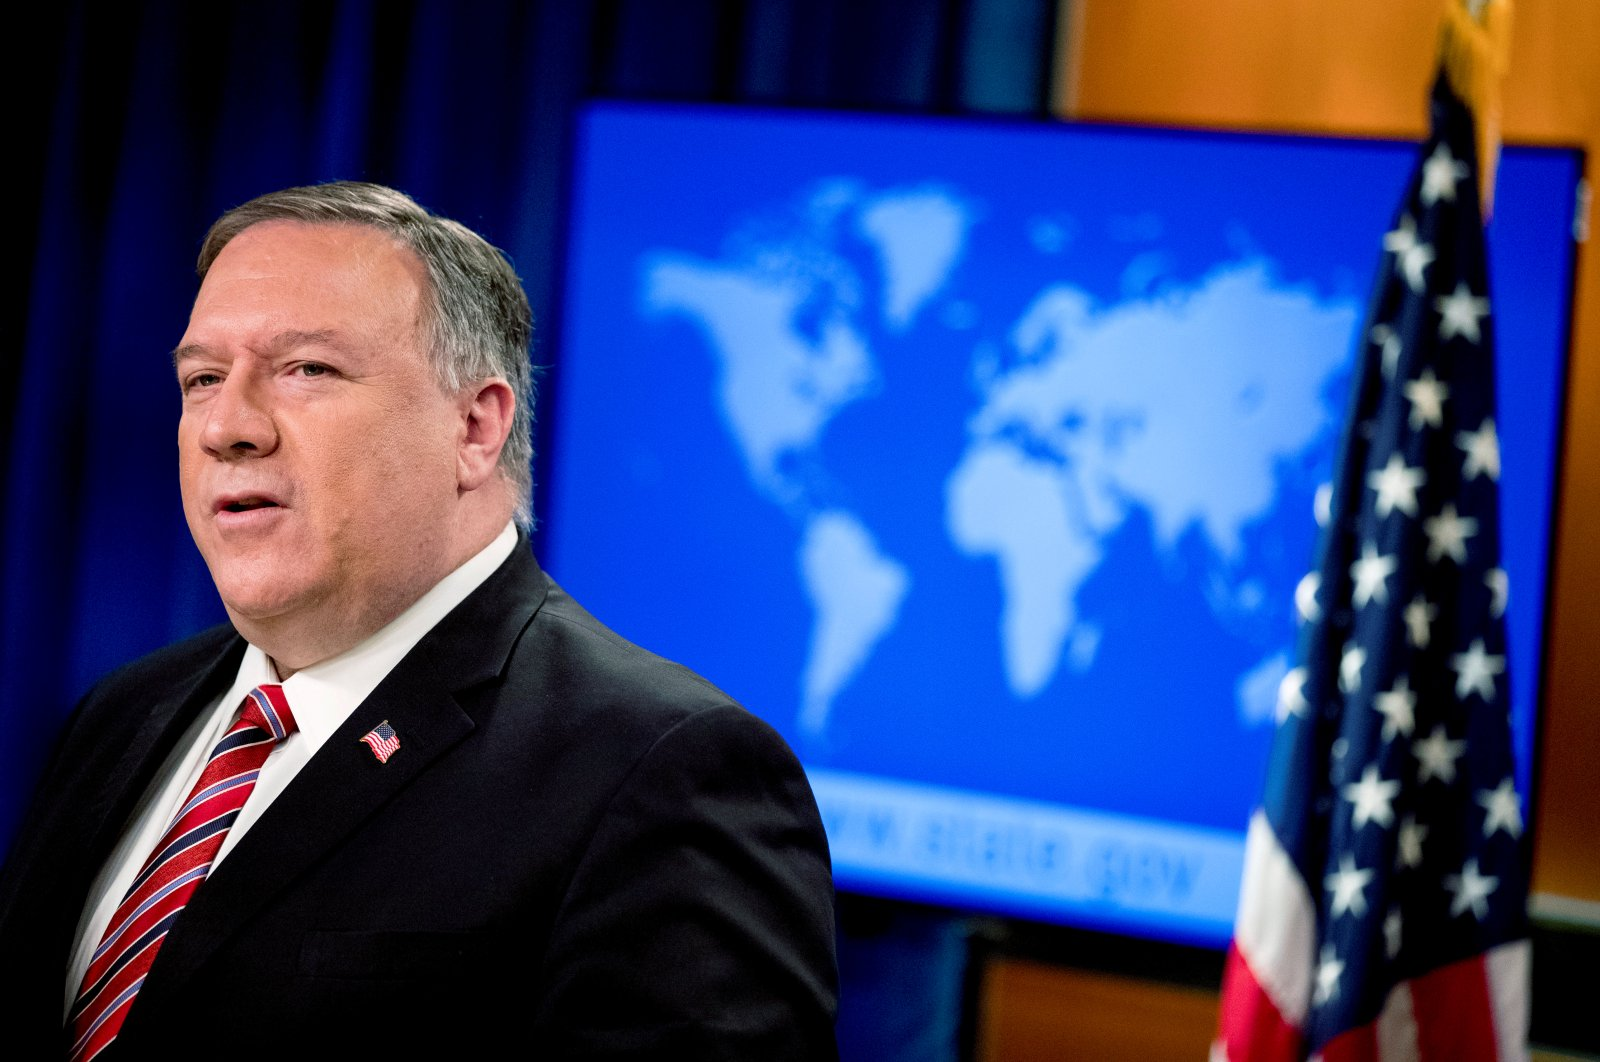 U.S. Secretary of State Mike Pompeo speaks at a news conference at the State Department, in Washington, D.C., U.S., April 29, 2020. (Reuters Photo)